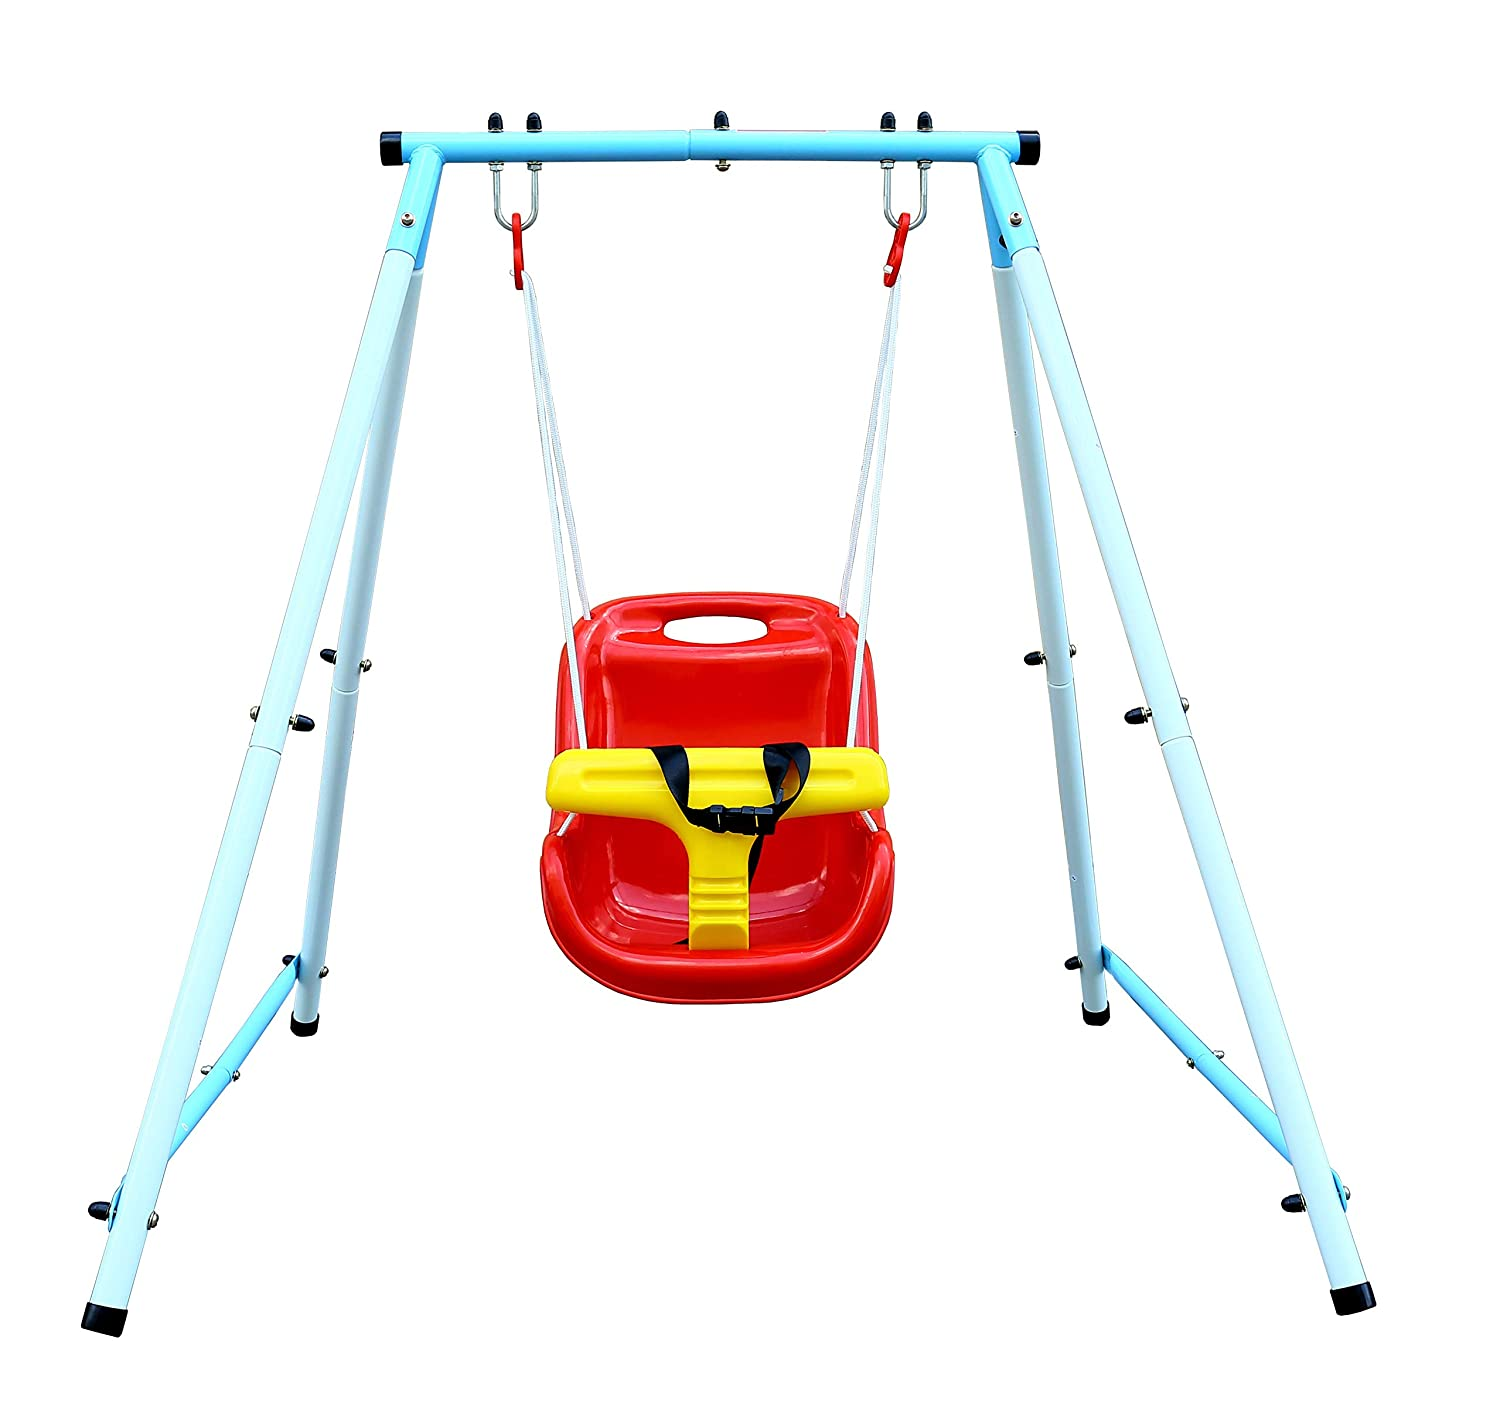 Northern Stone Indoor & Outdoor Steel Frame Toddler Swing Set with Safety Seat Northern Stone Limited